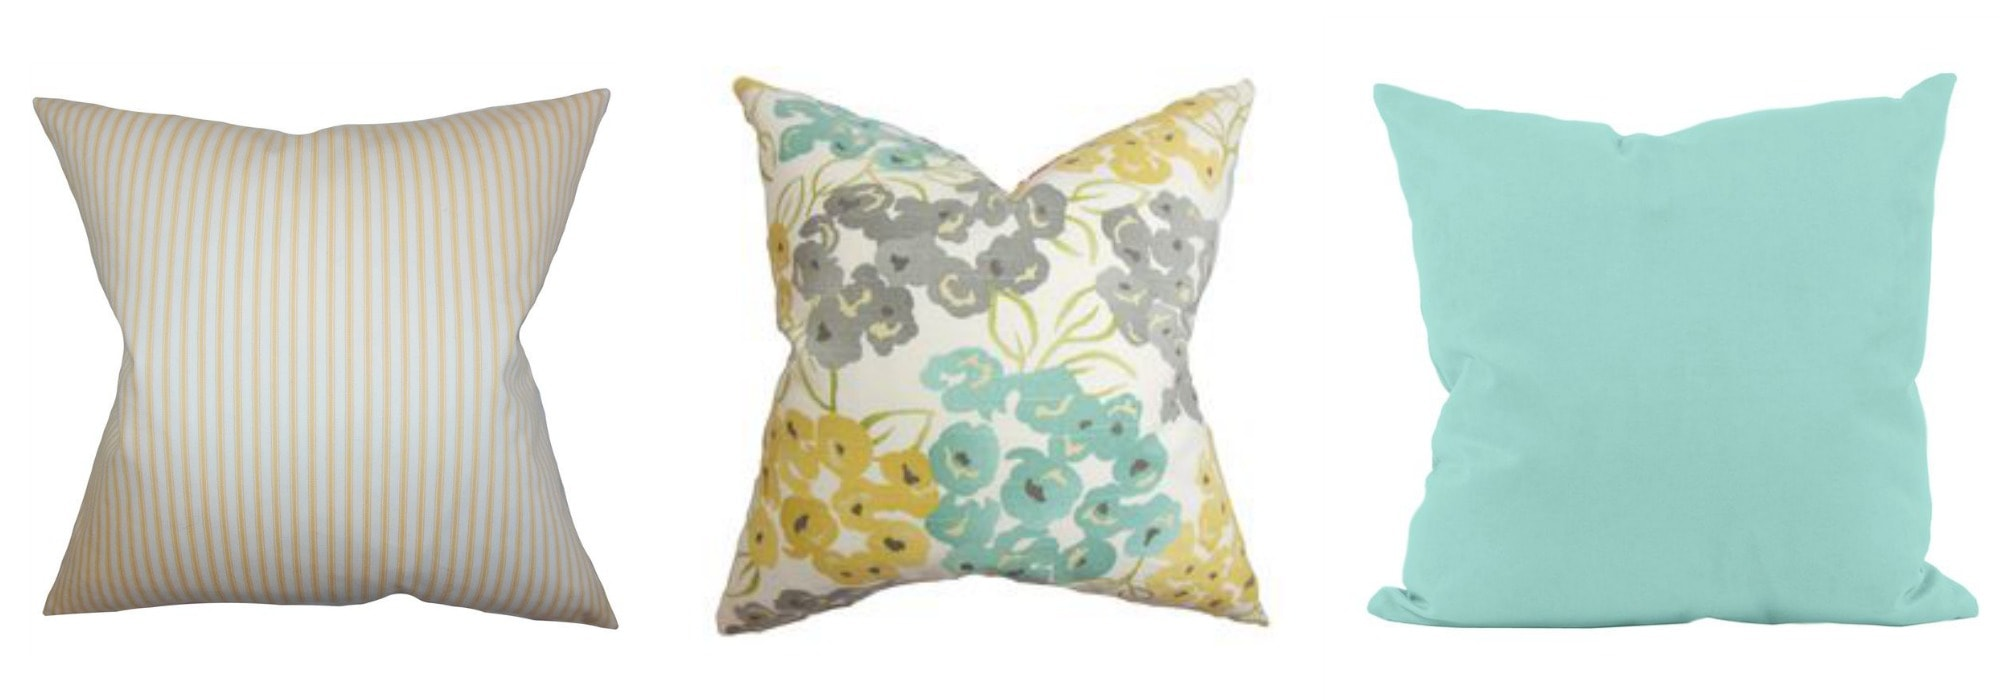 3 Ways To Mix And Match Throw Pillows Just A Girl And Her Blog